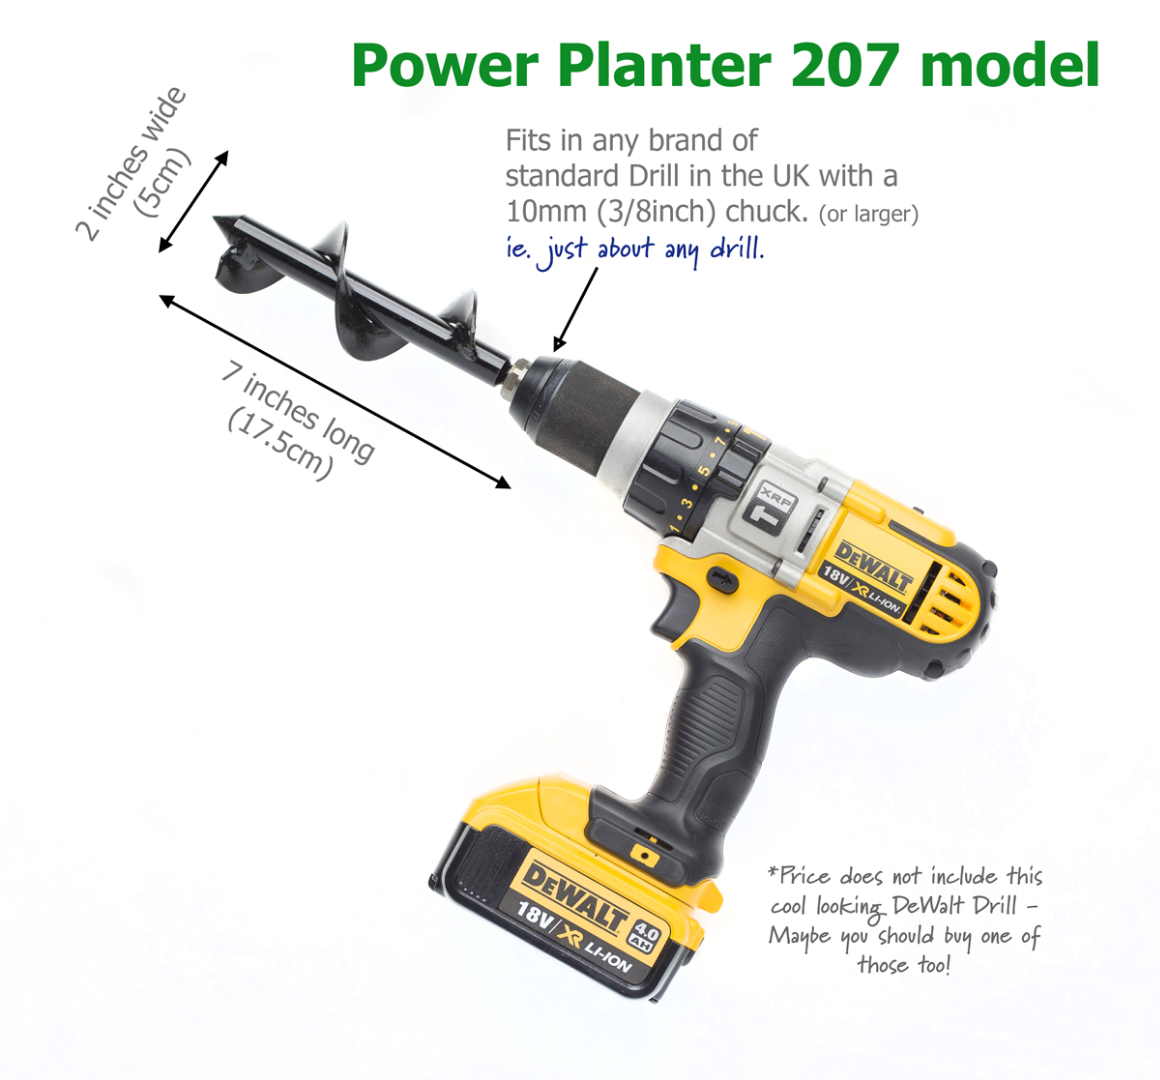 207 Power Planter